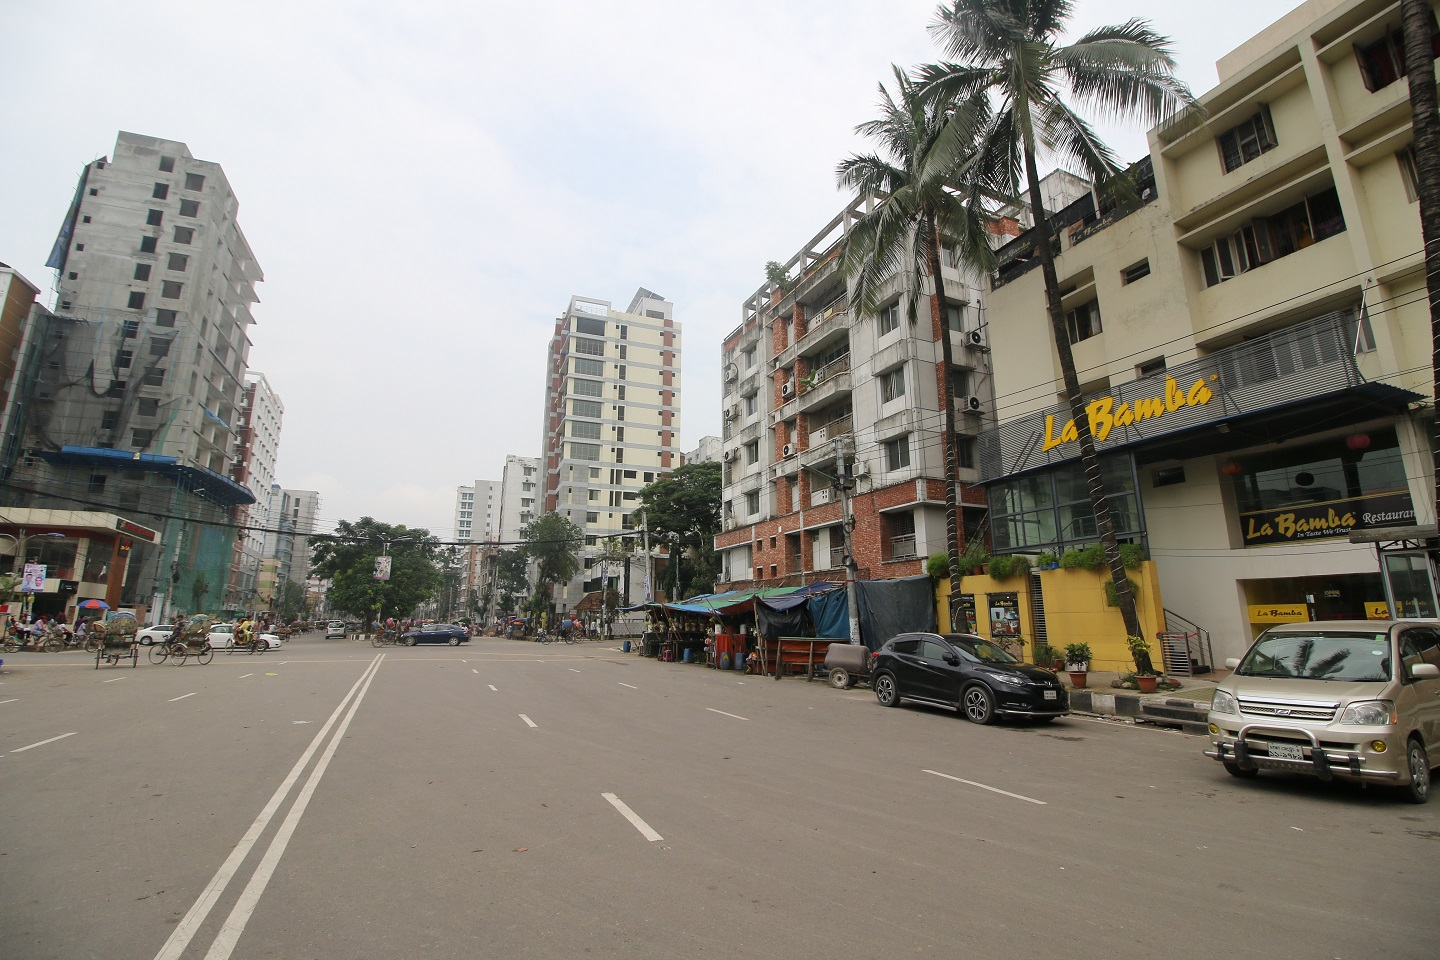 cars parked in an empty streets